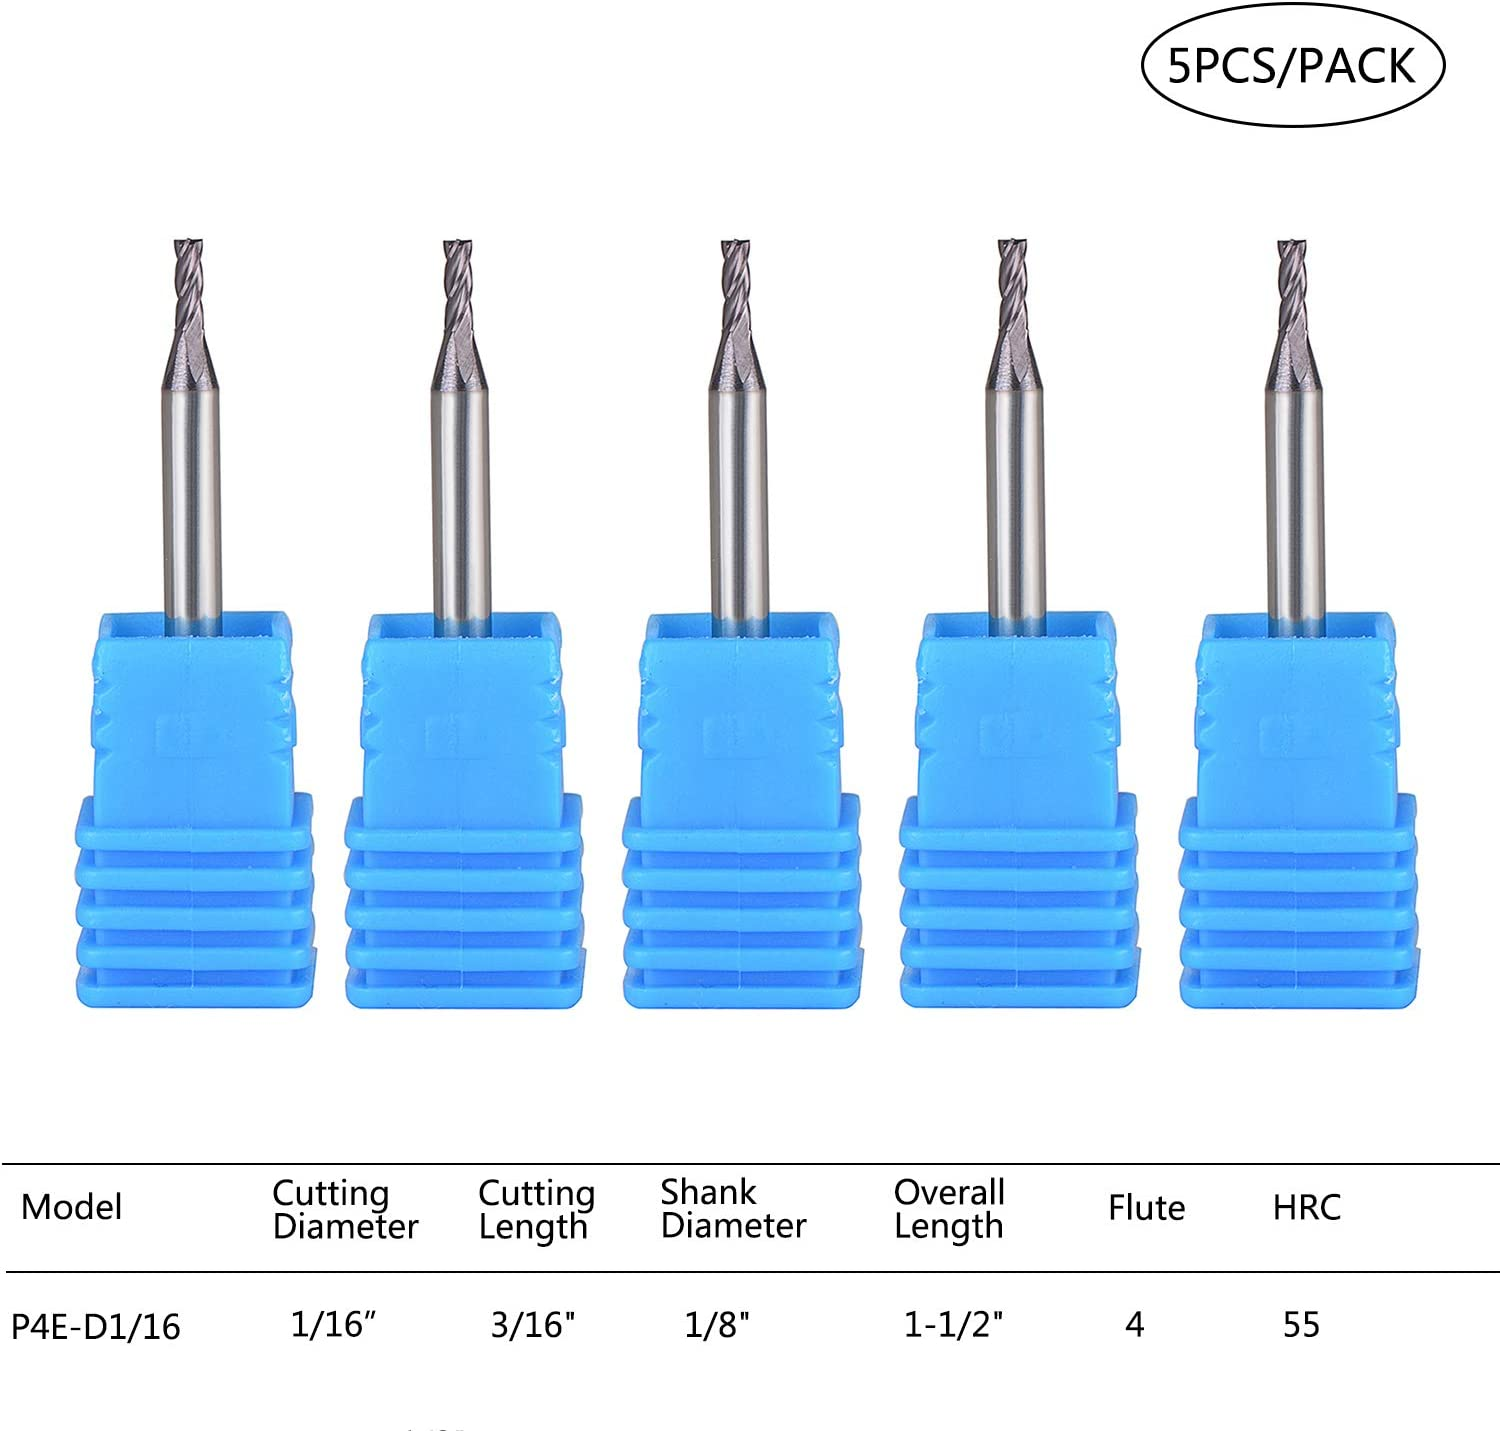 5 PCS 4 FLUTE 1//8 END MILL SOLID CARBIDE TIALN COATED X 1//2 X 1-1//2 CNC BIT